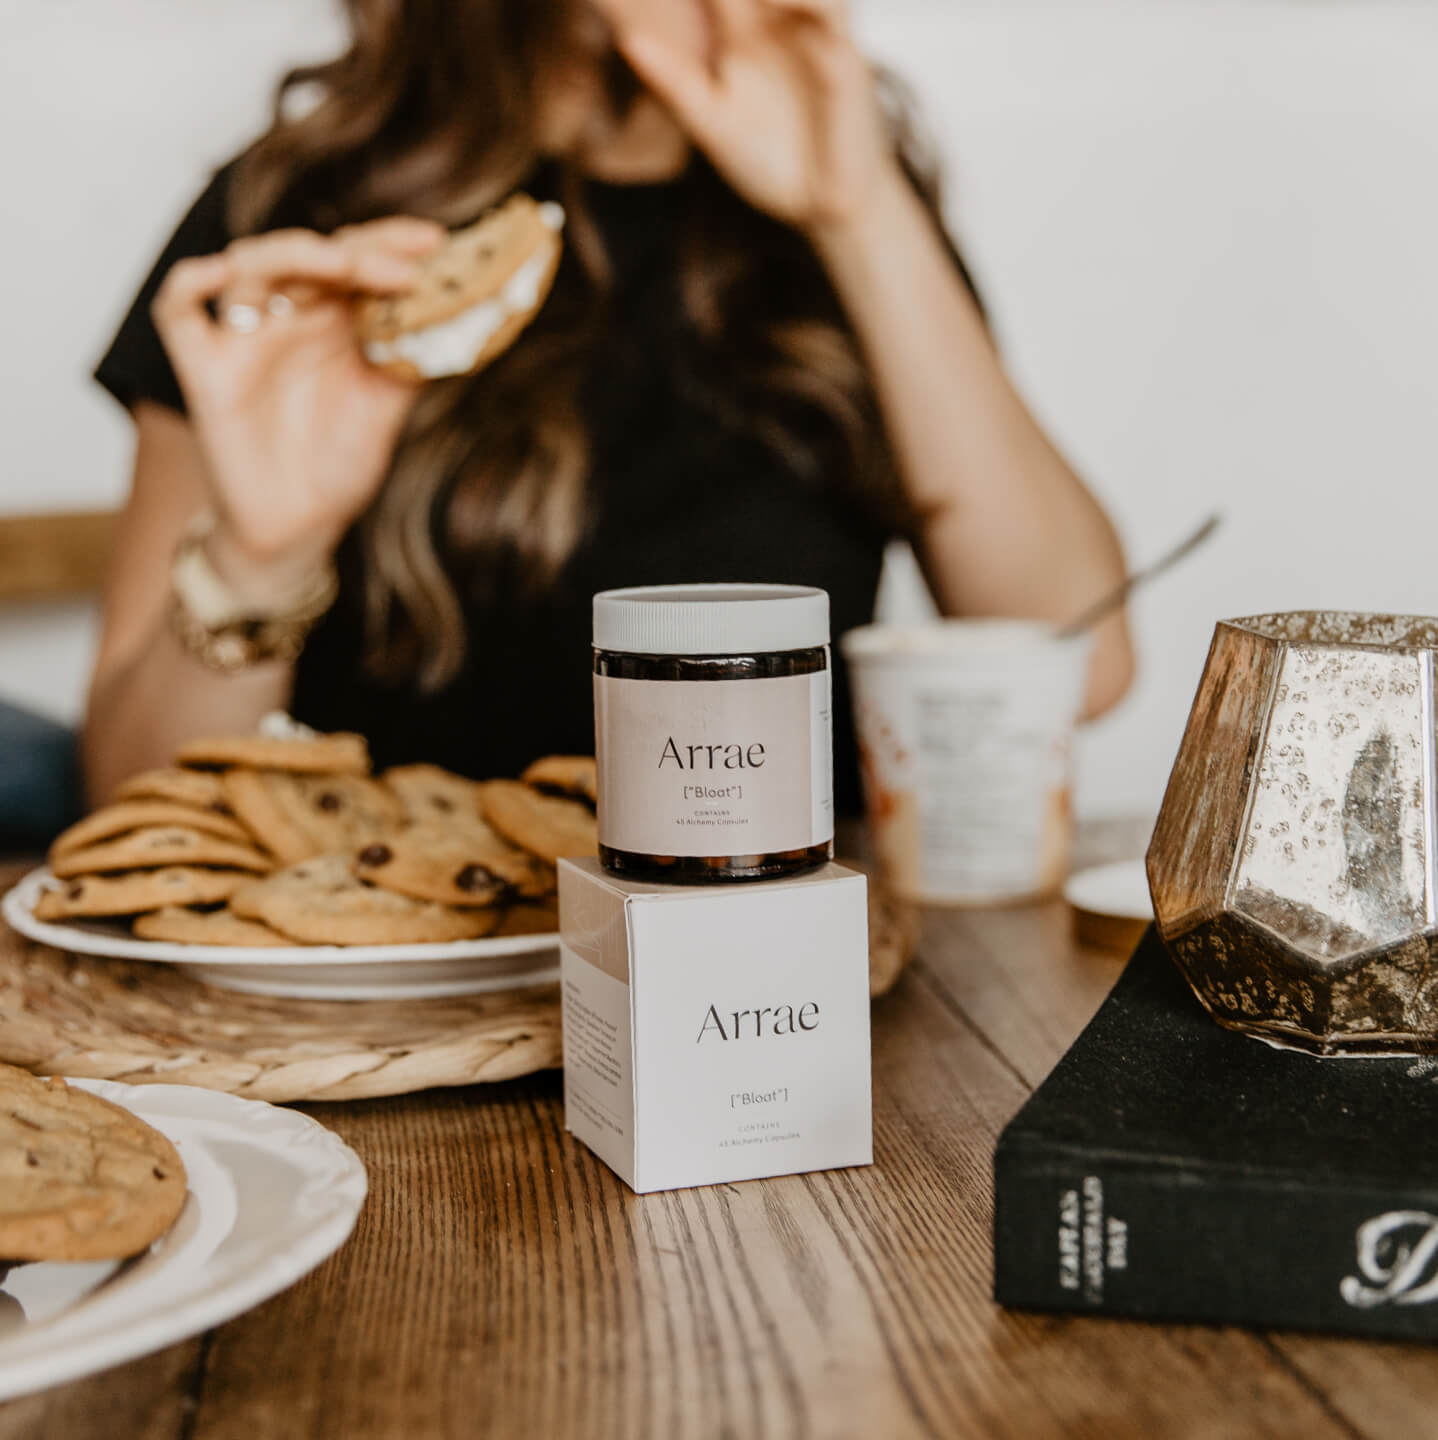 Arrae bloat alchemy capsules are designed to help break down food, speed up dugestion, protect your organs and more so when you want to indulge in a pile of chocolate chip cookies, you can